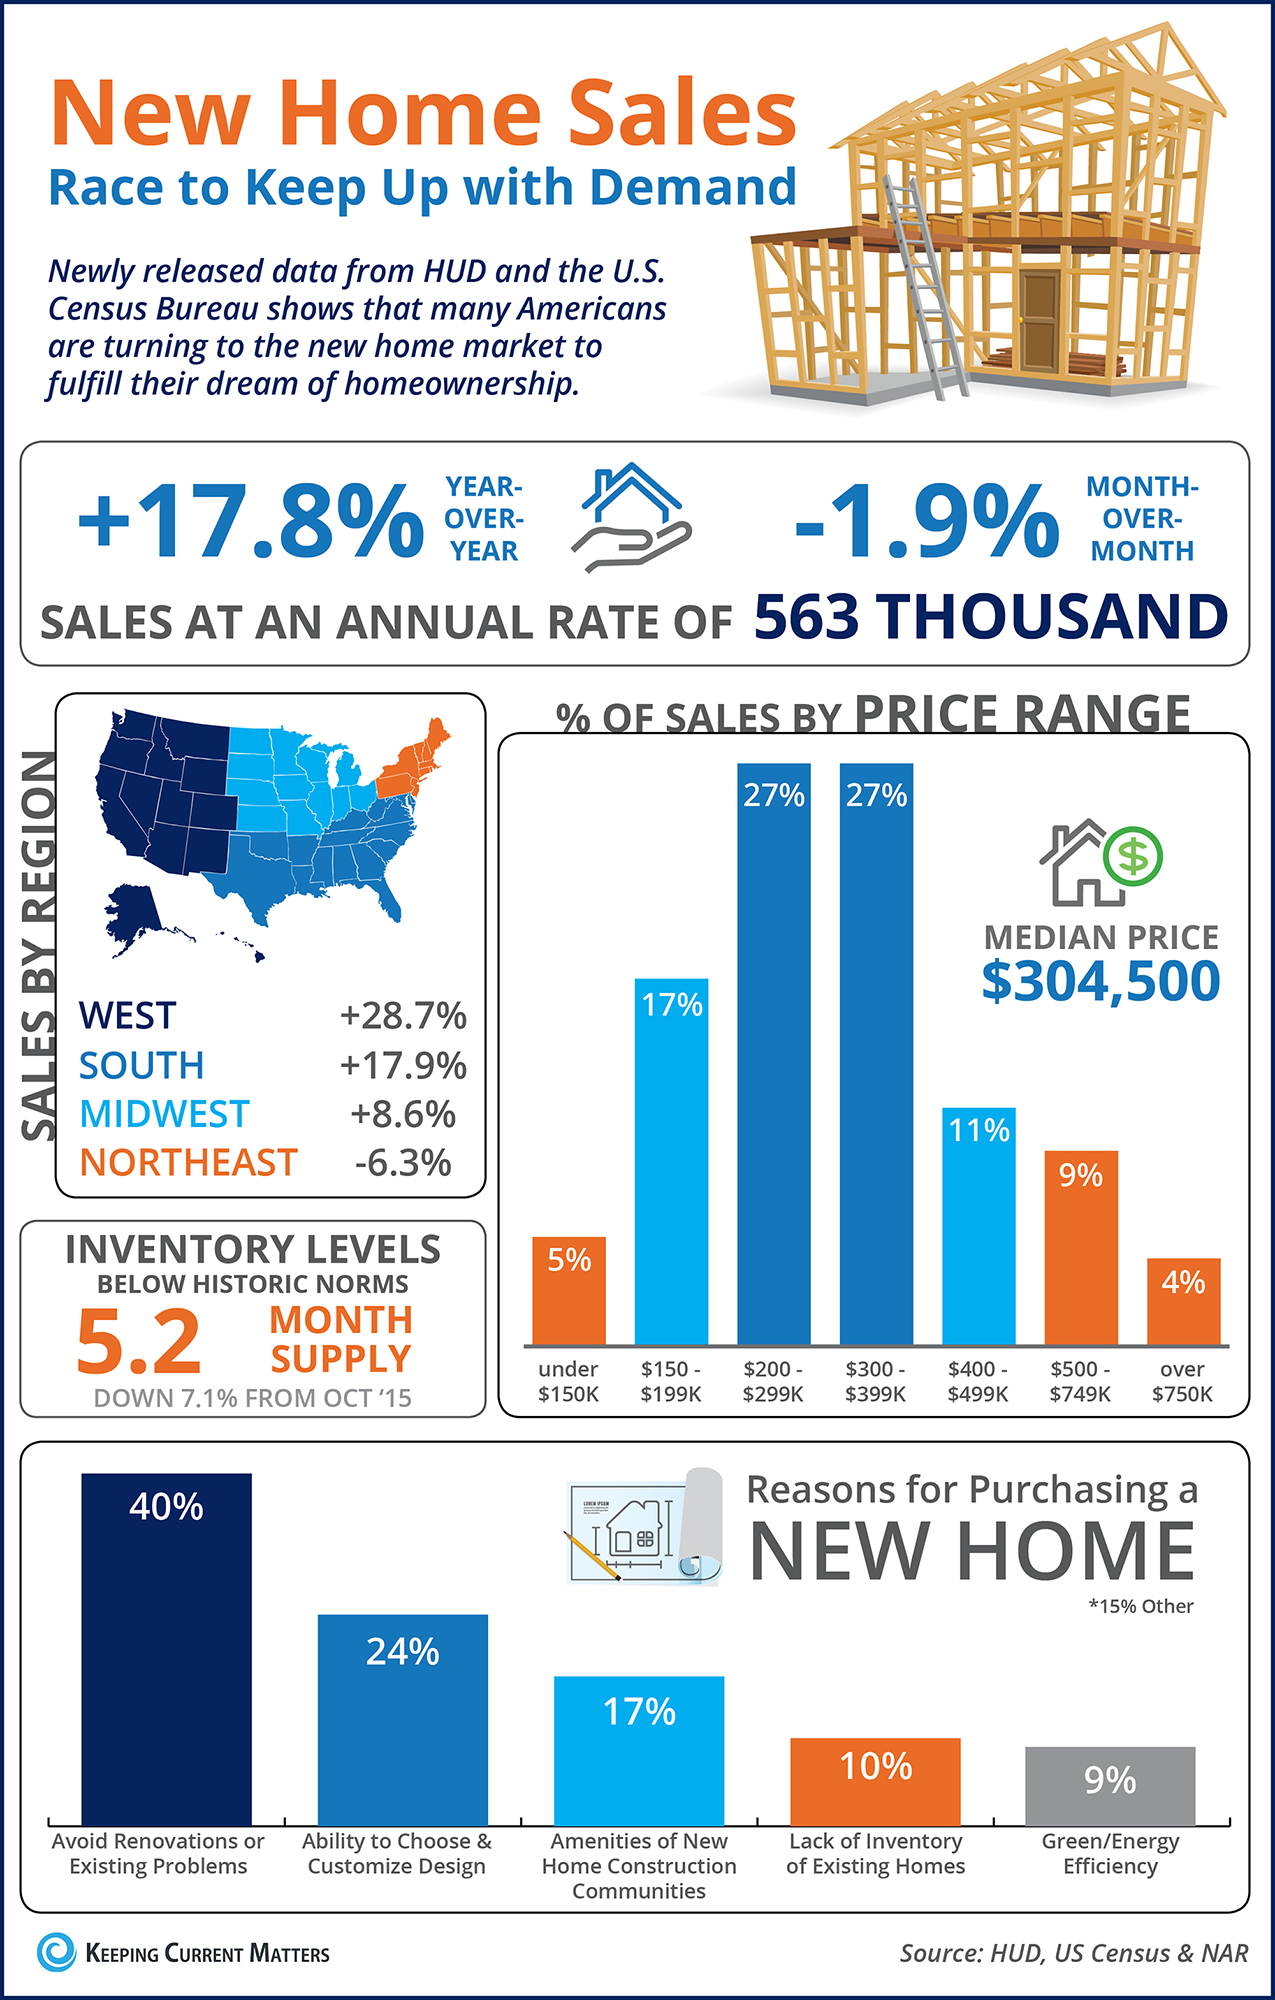 New Home Sales Race to Keep Up with Demand [INFOGRAPHIC] | Keeping Current Matters